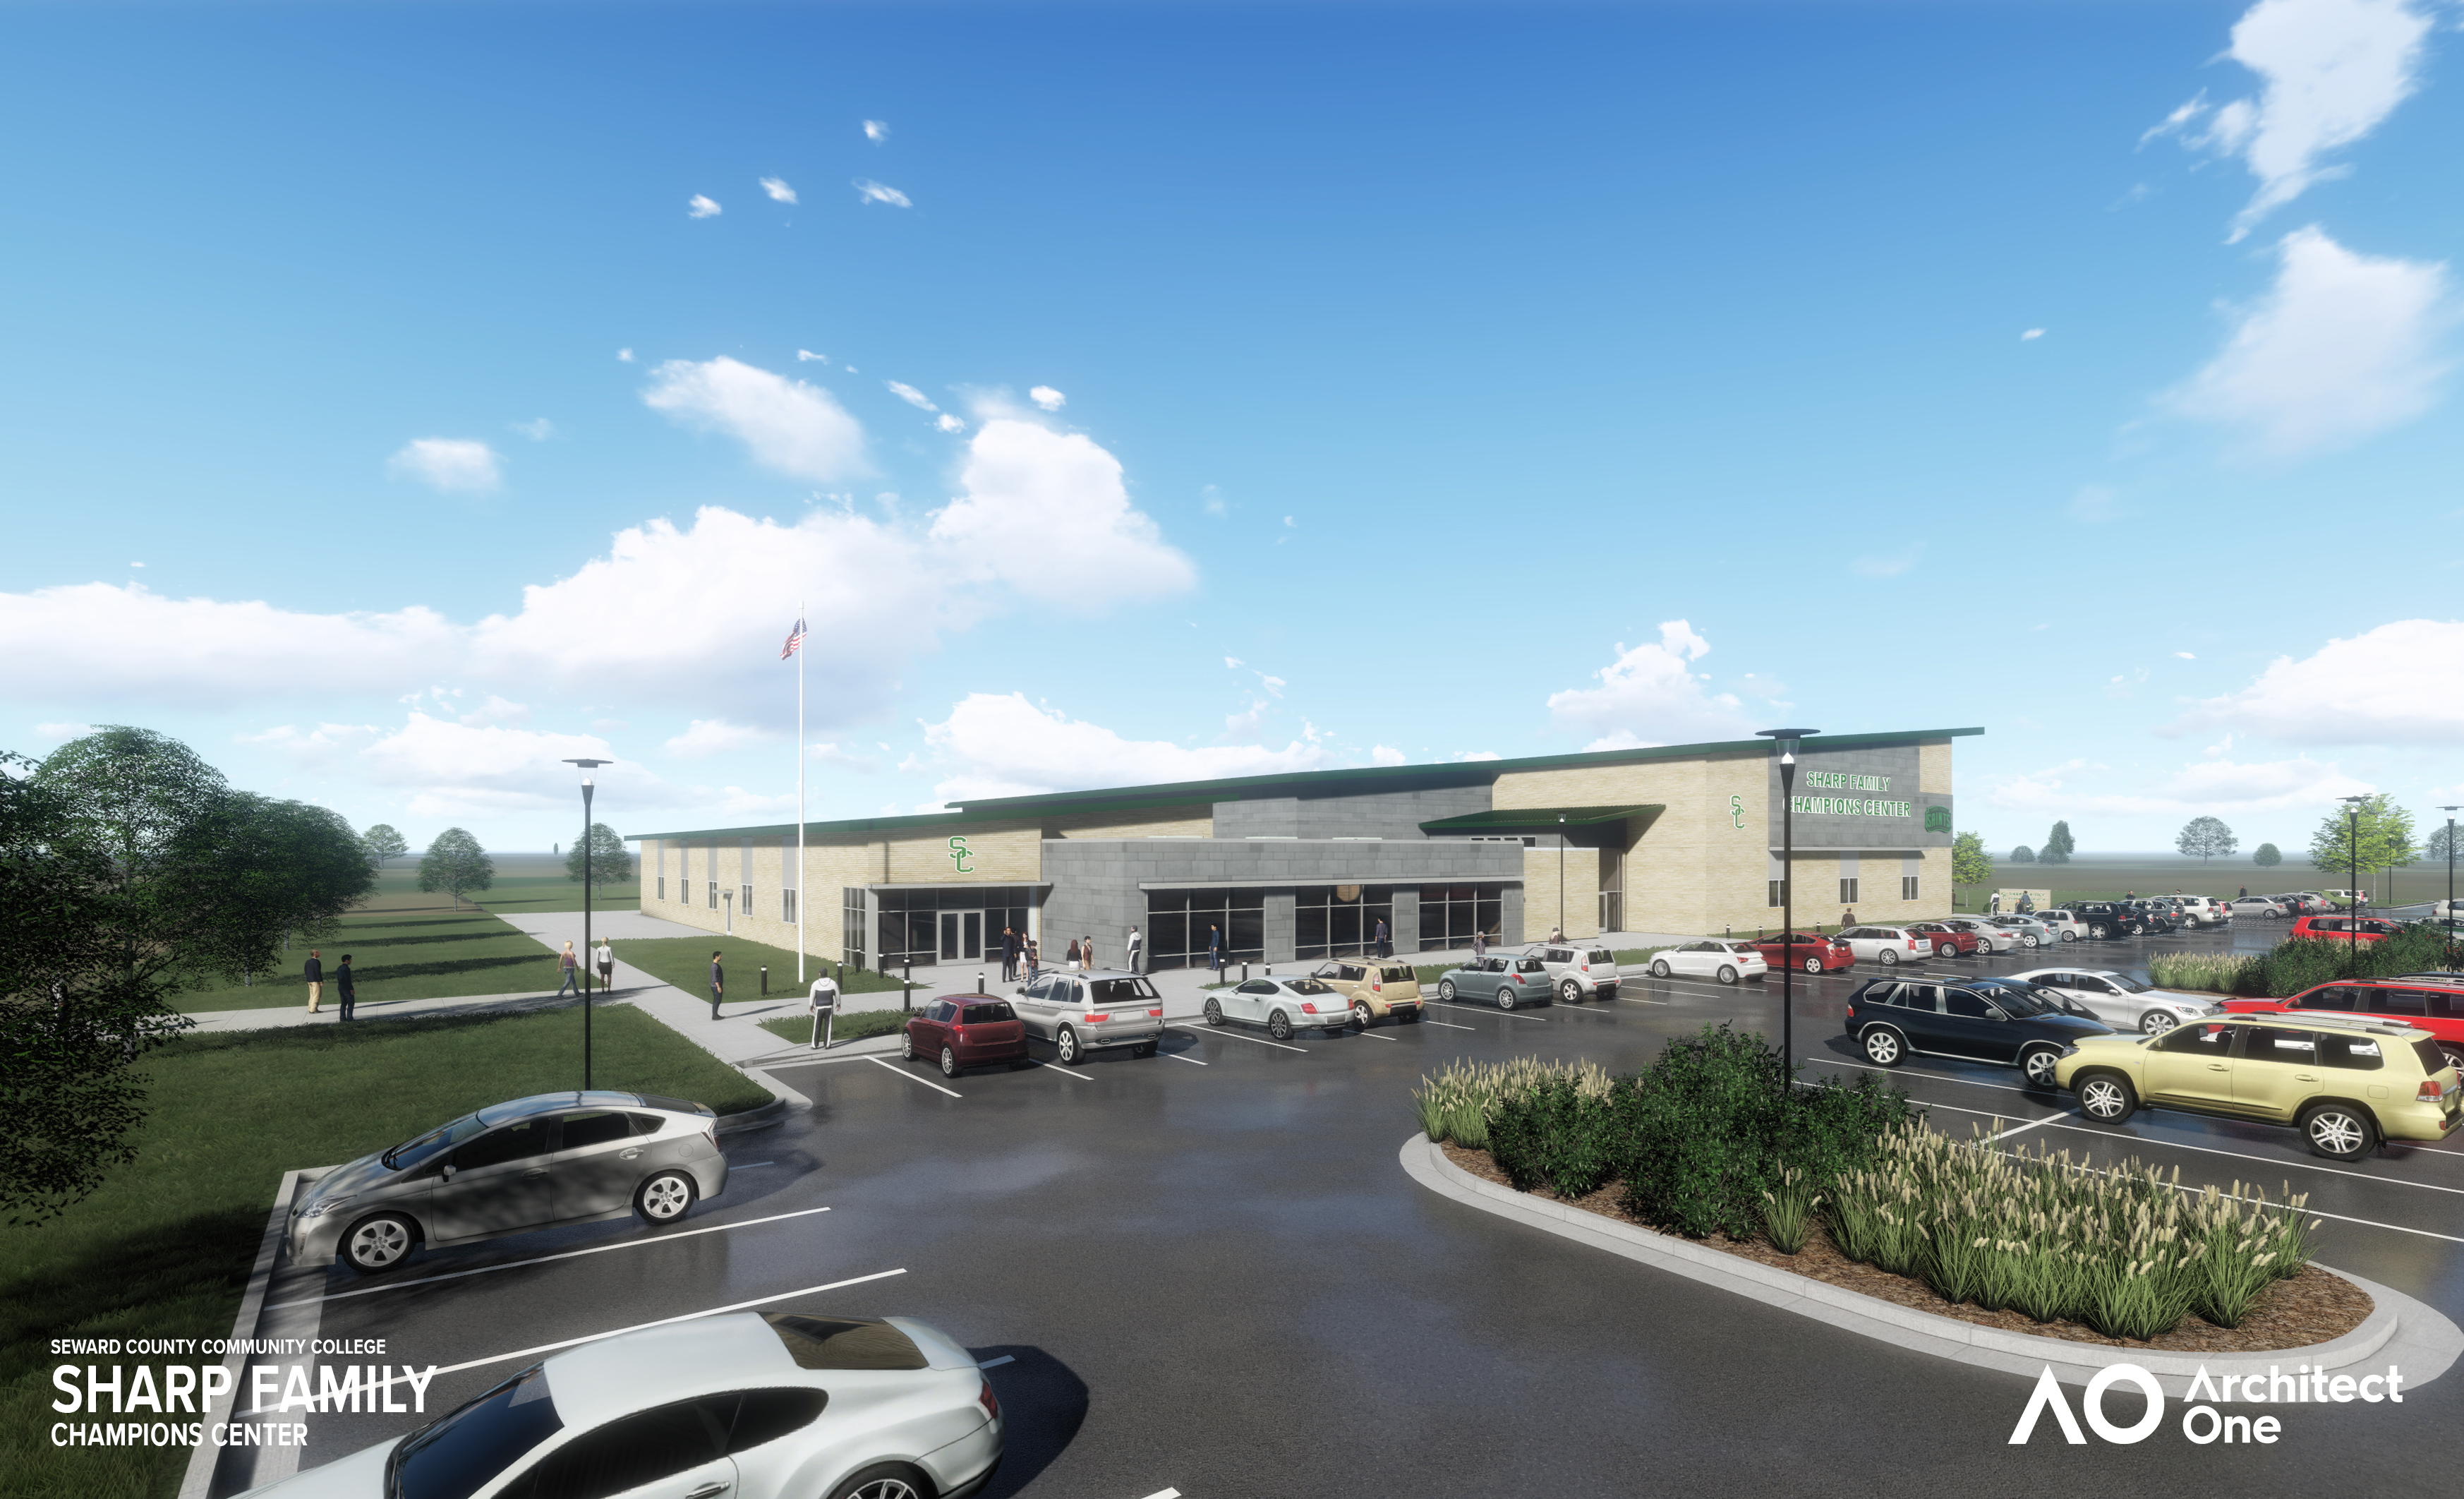 SCCC Board Approves Start of Construction for Sharp Family Champions Center